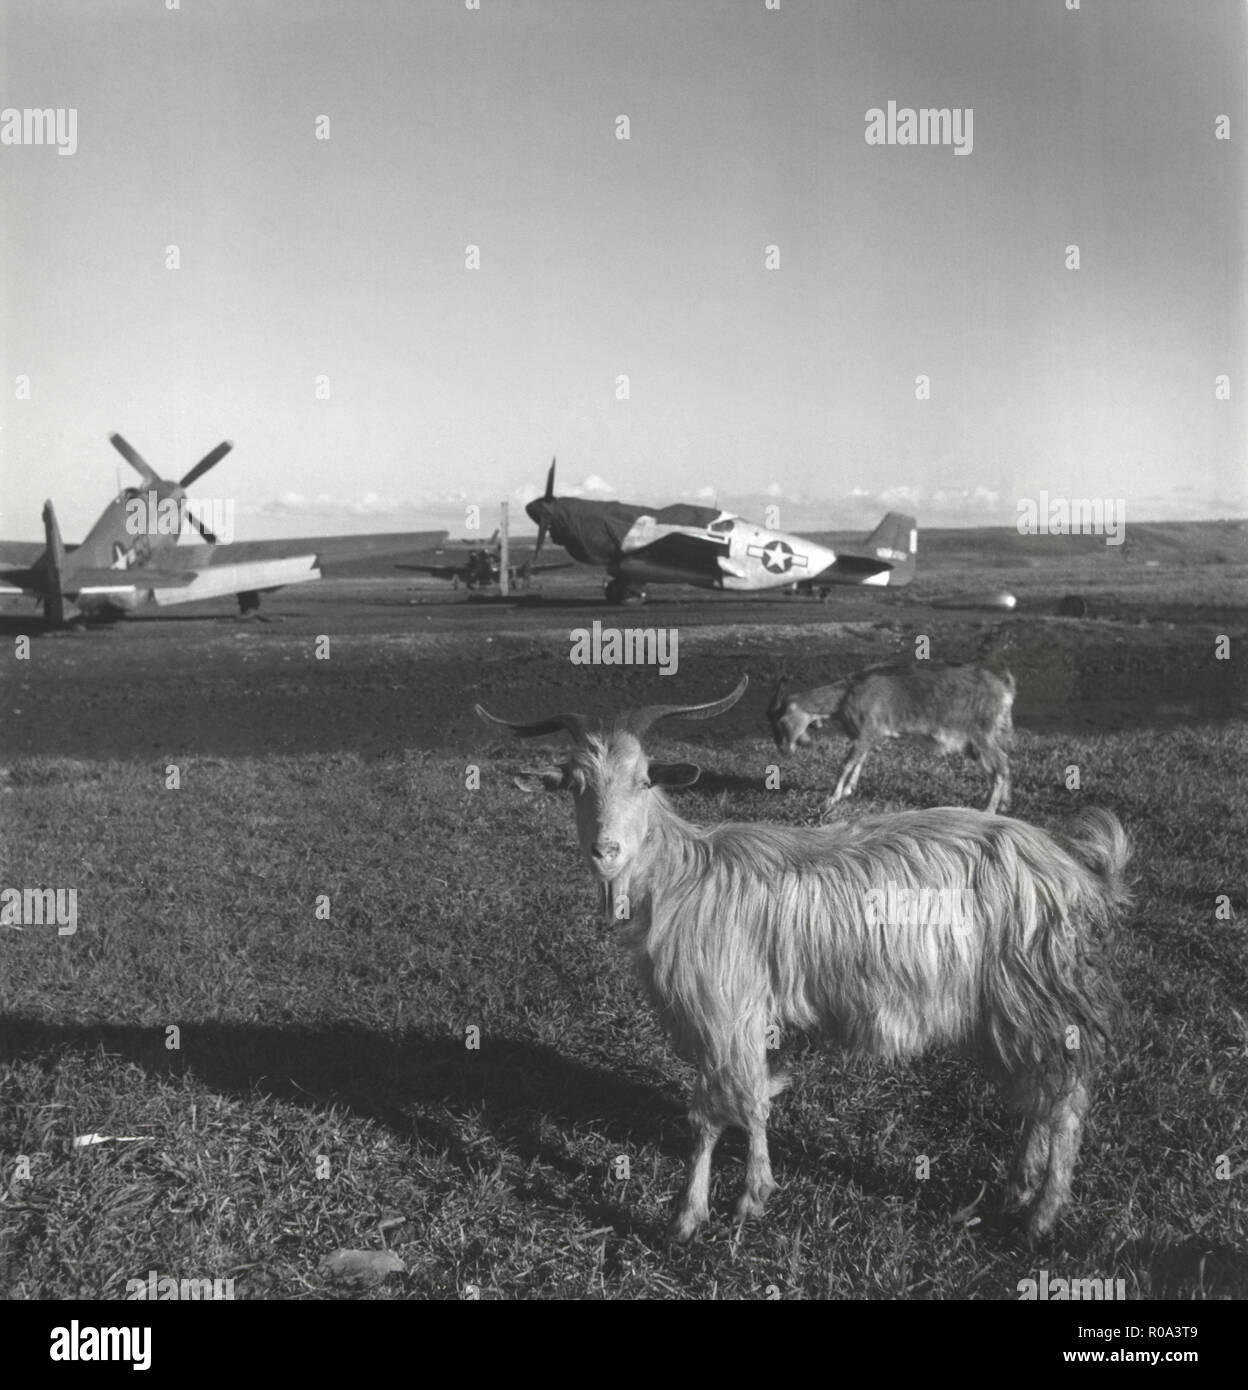 Goats on Runway at American Air Base with Airplanes in Background, Ramitelli, Italy, Toni Frissell, March 1945 - Stock Image